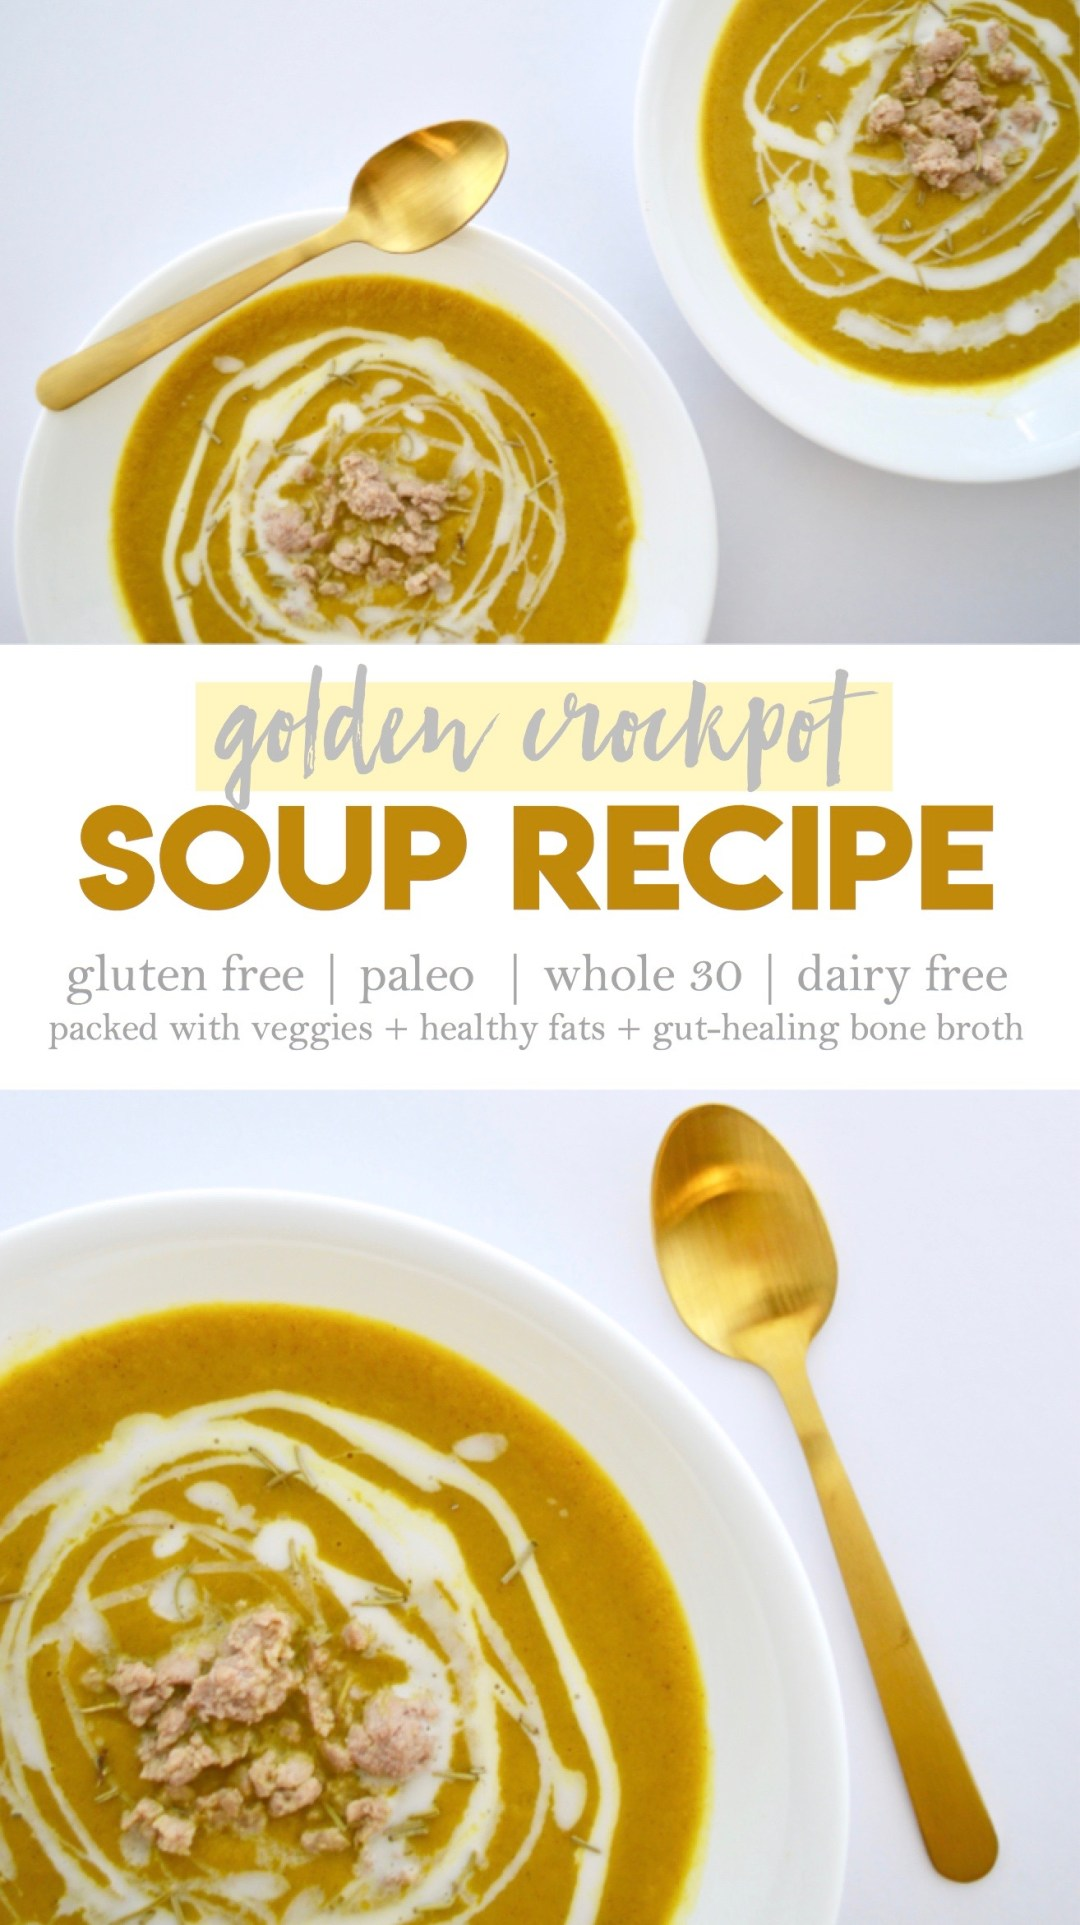 This crockpot soup recipe is easy to make, packed with veggies, and healing for the gut | paleo, whole 30, dairy free, gluten free